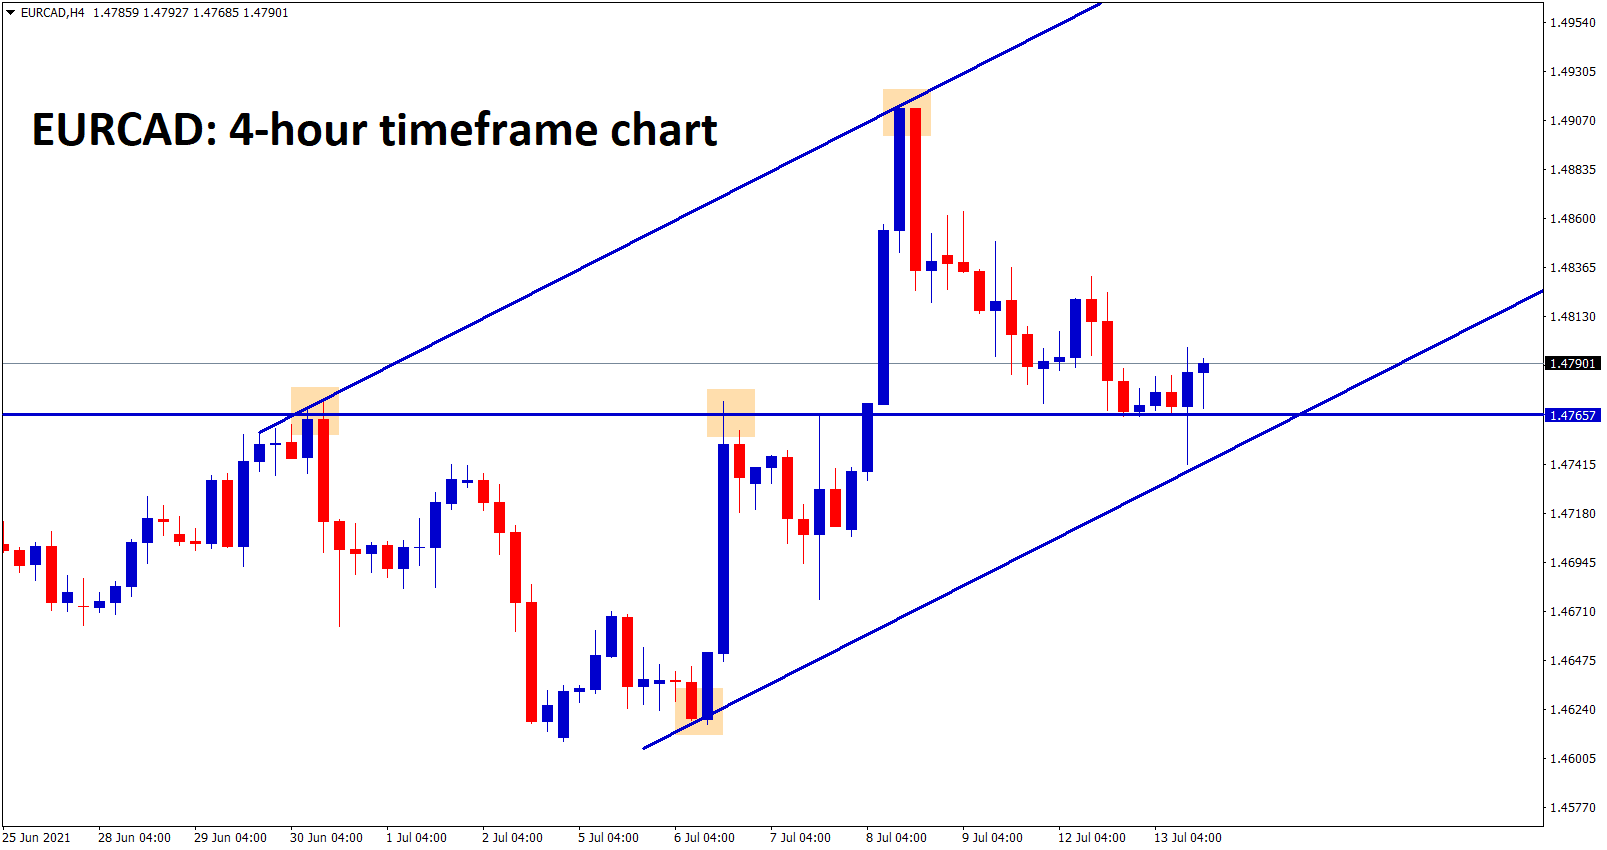 EURCAD is trying to bounce back back after hitting the higher low zone and recently broken resistance.